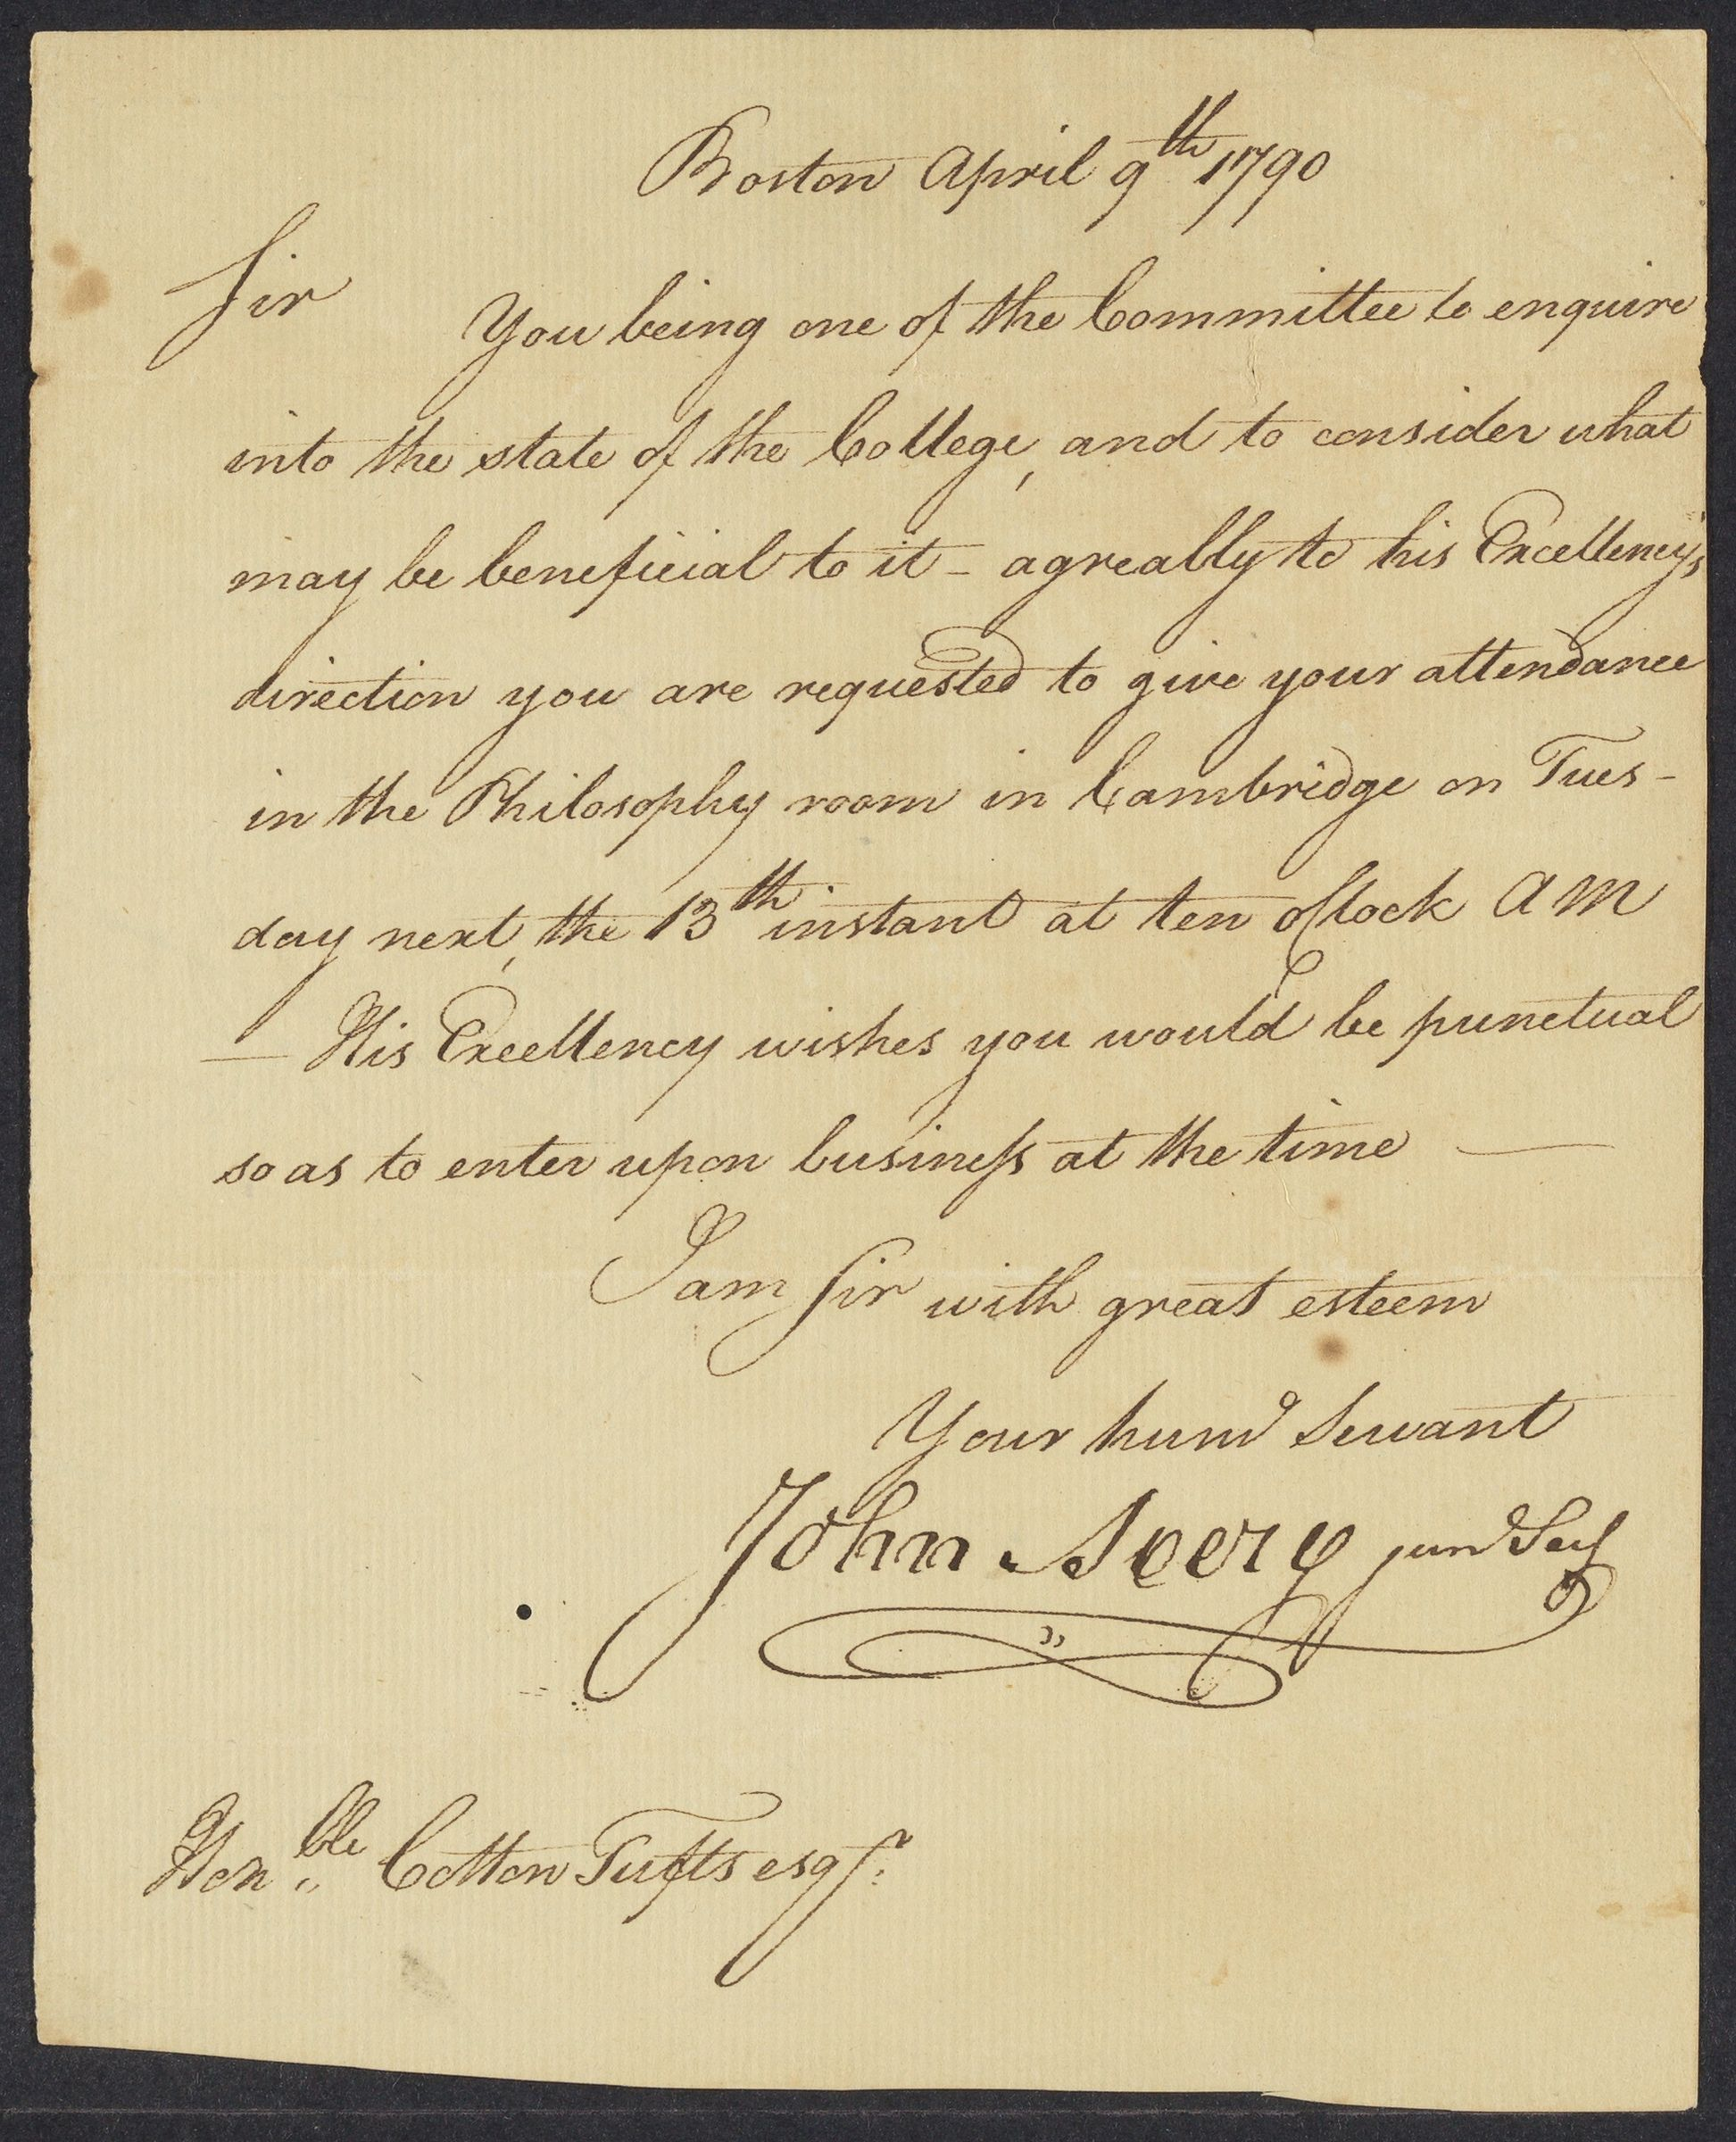 Letter from John Avery to Cotton Tufts, 1790 April 9